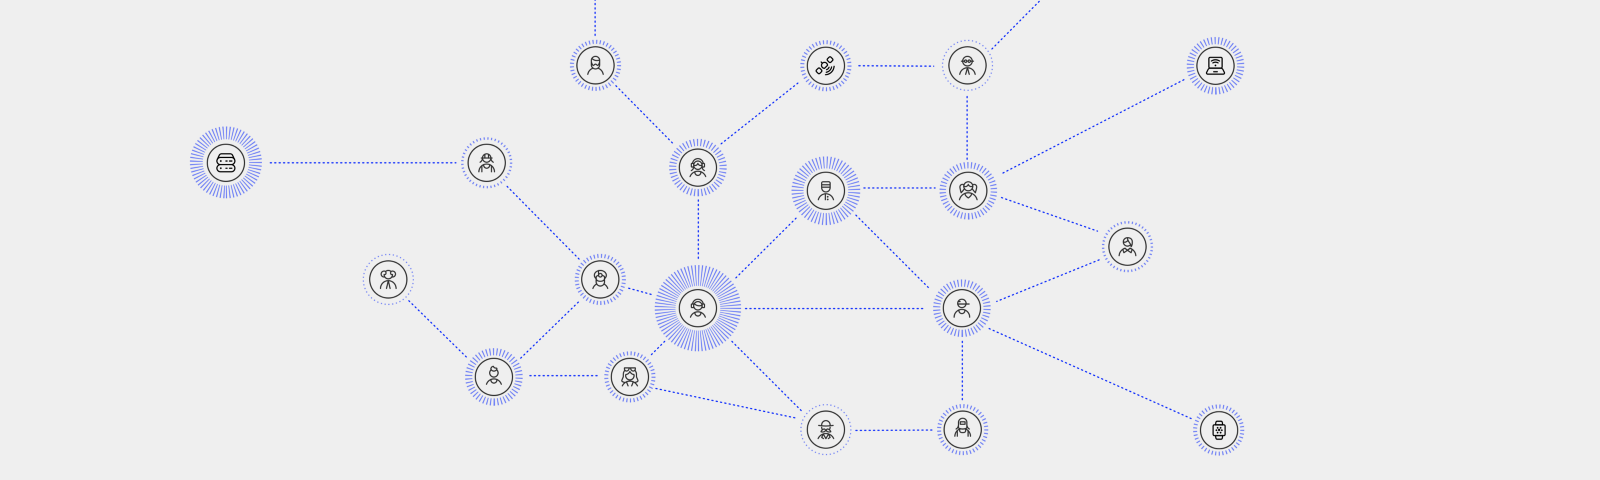 A network of connections between people and machines sharing various levels of data across the network